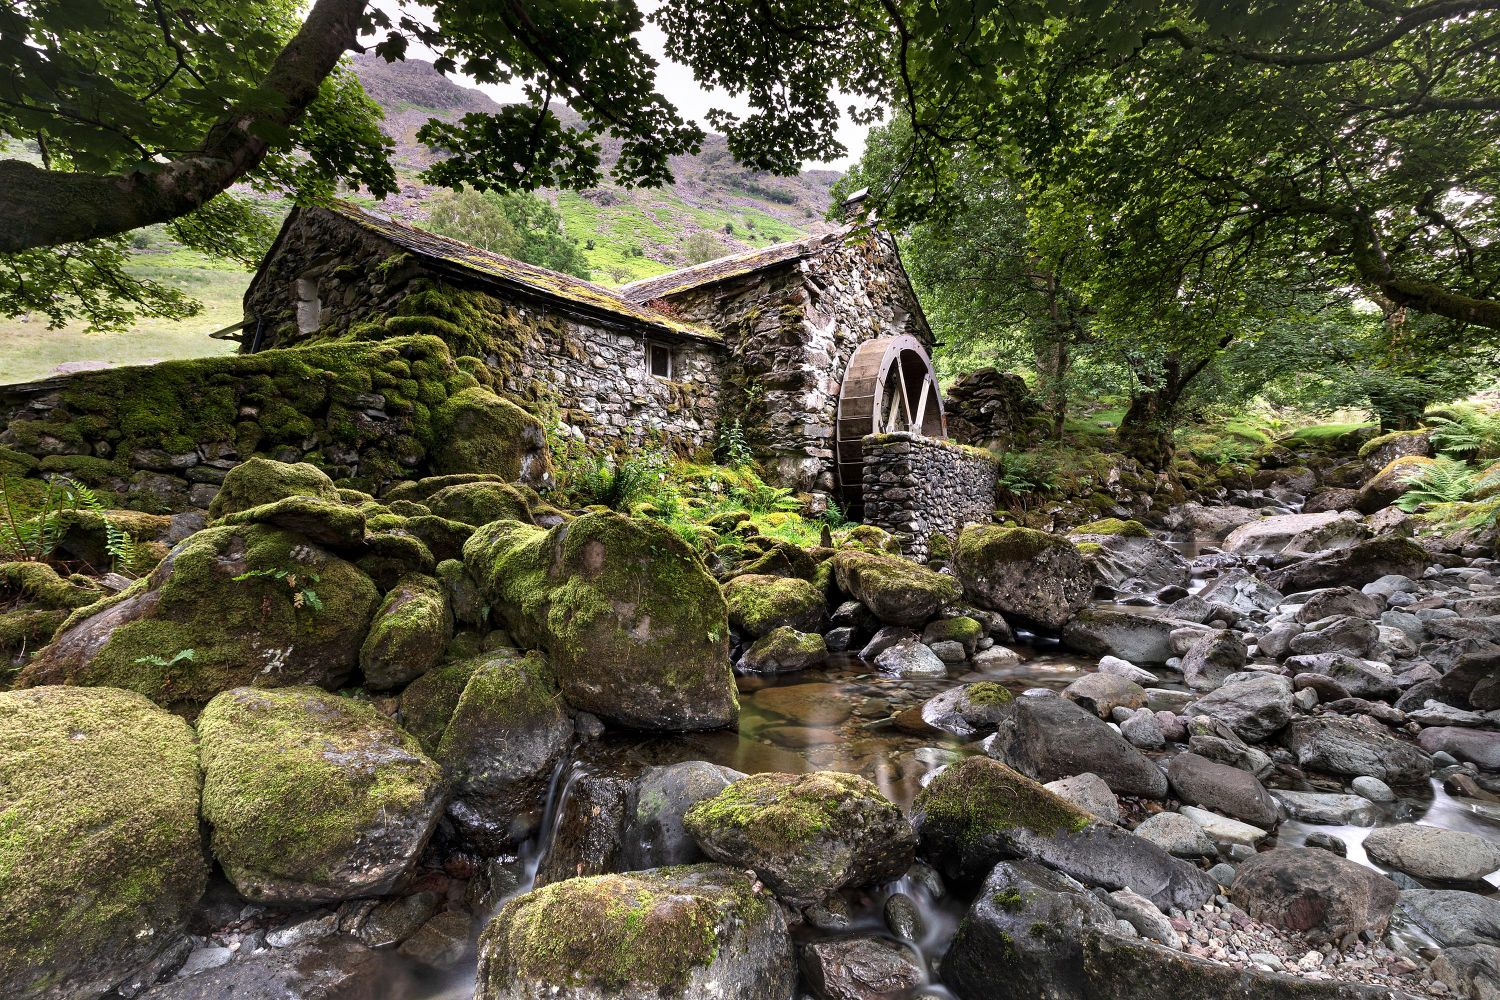 The Old Borrowdale Mill near Derwentwater by Martin Lawrence